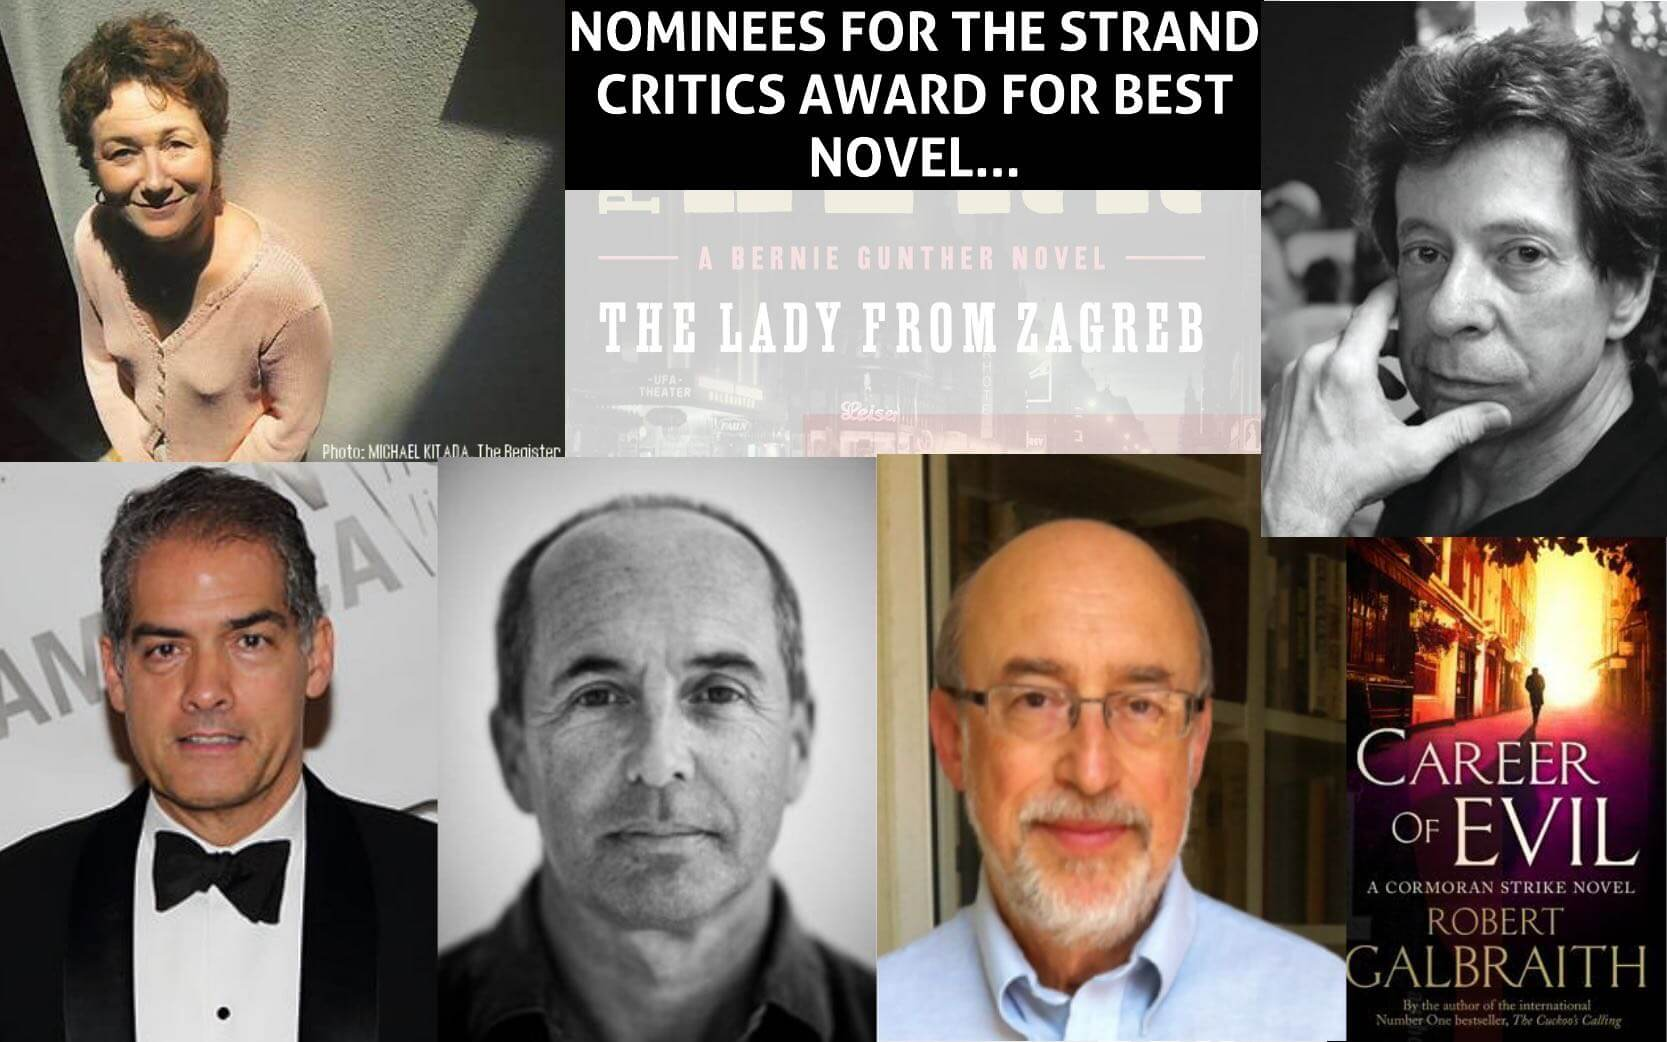 nominees for the Strand Critics Awards